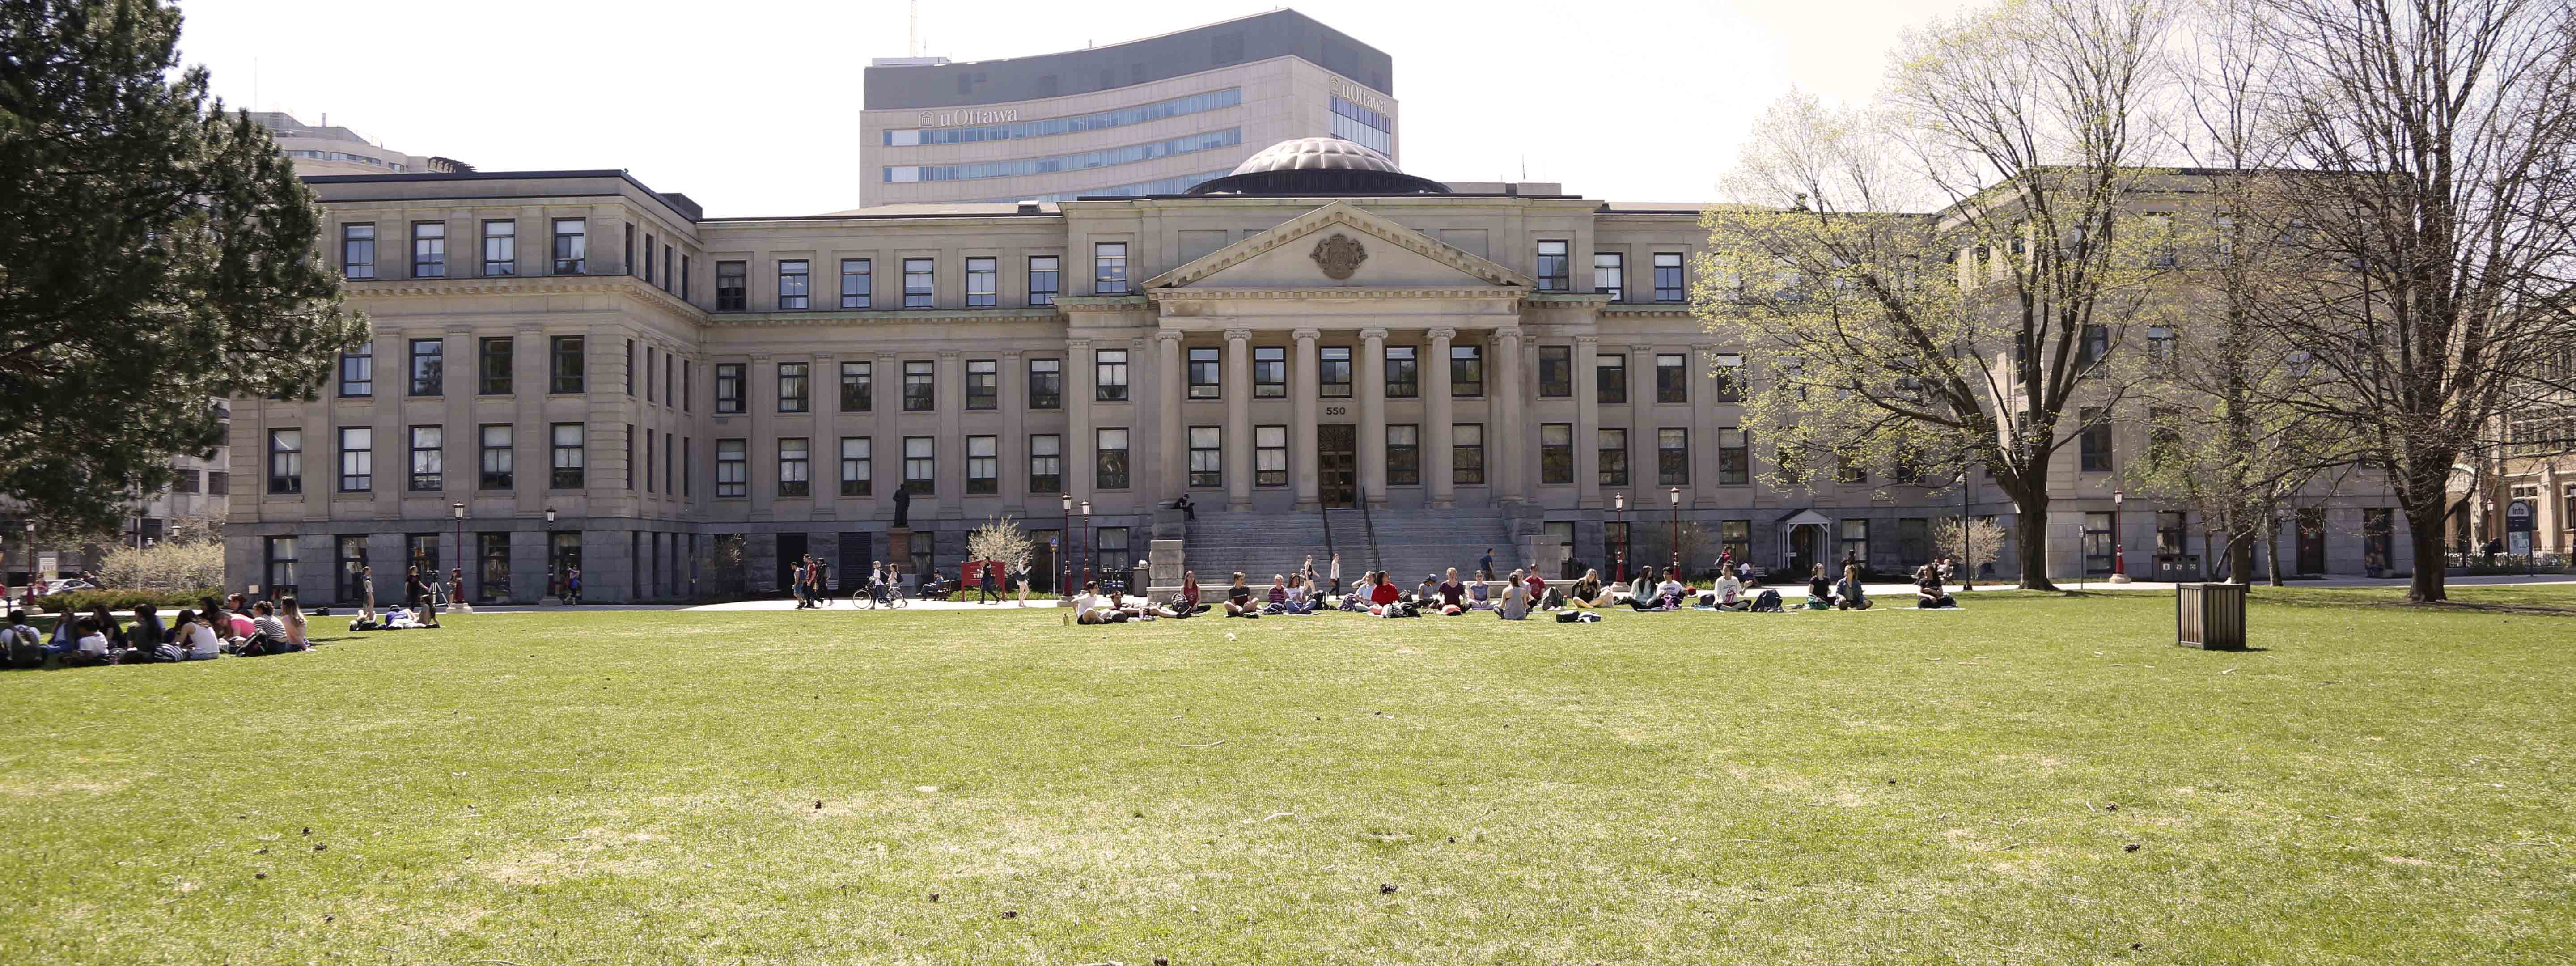 Photo of Tabaret building with students practicing yoga on the lawn in front of the large columns, while a group of people are sitting in a circle on the left side of the photo.